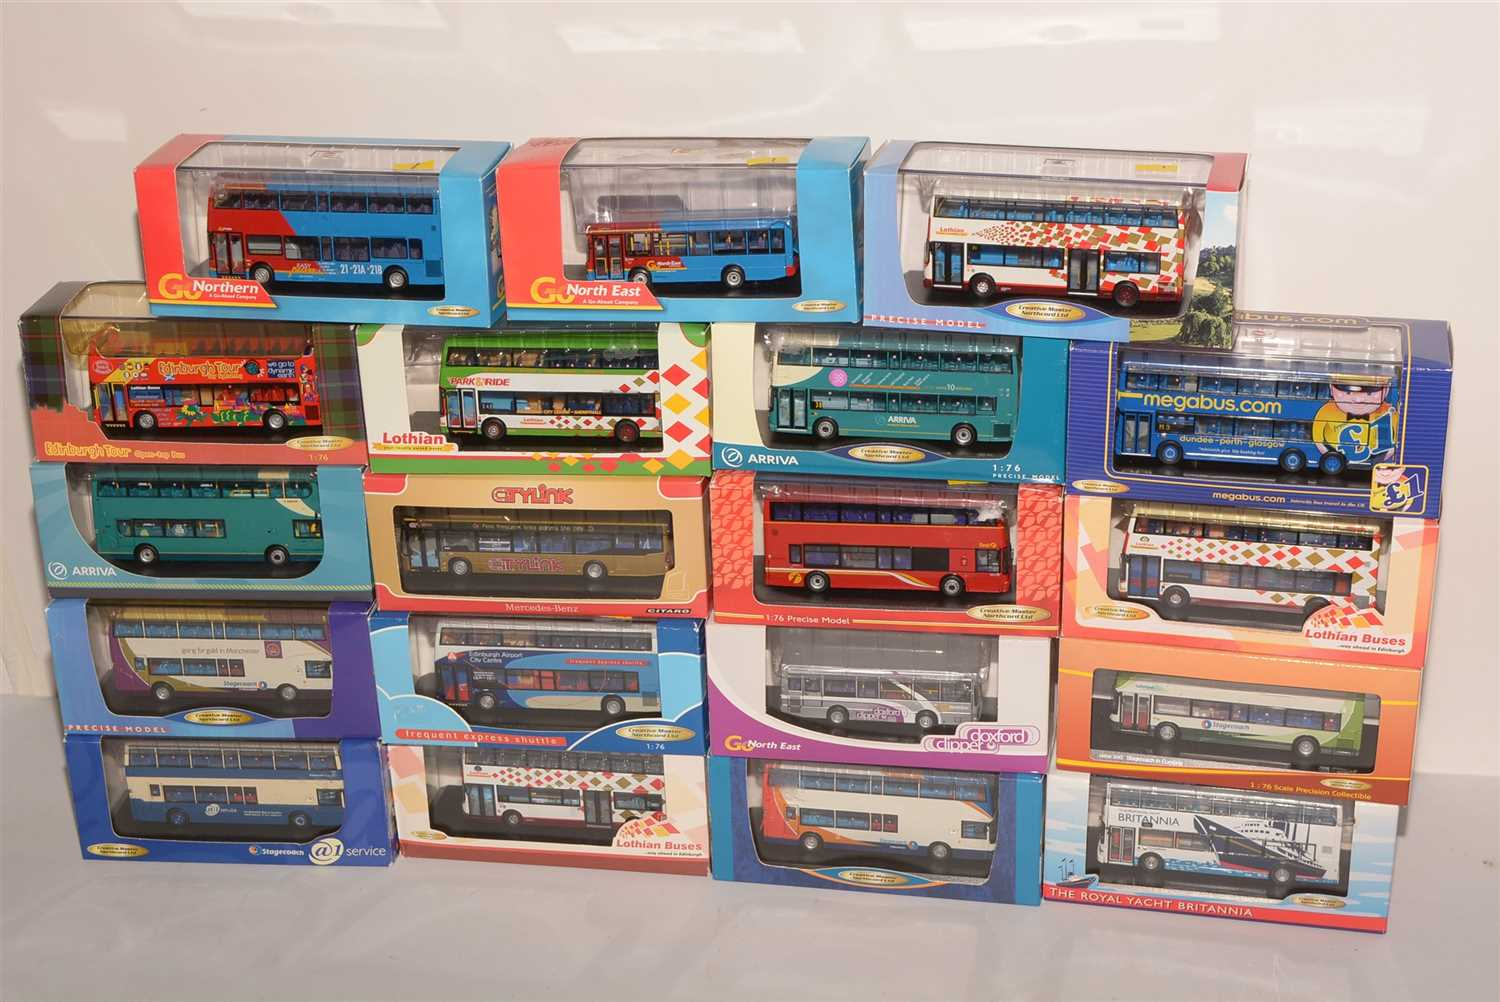 Lot 1251 - Die-cast model buses by Creative Master